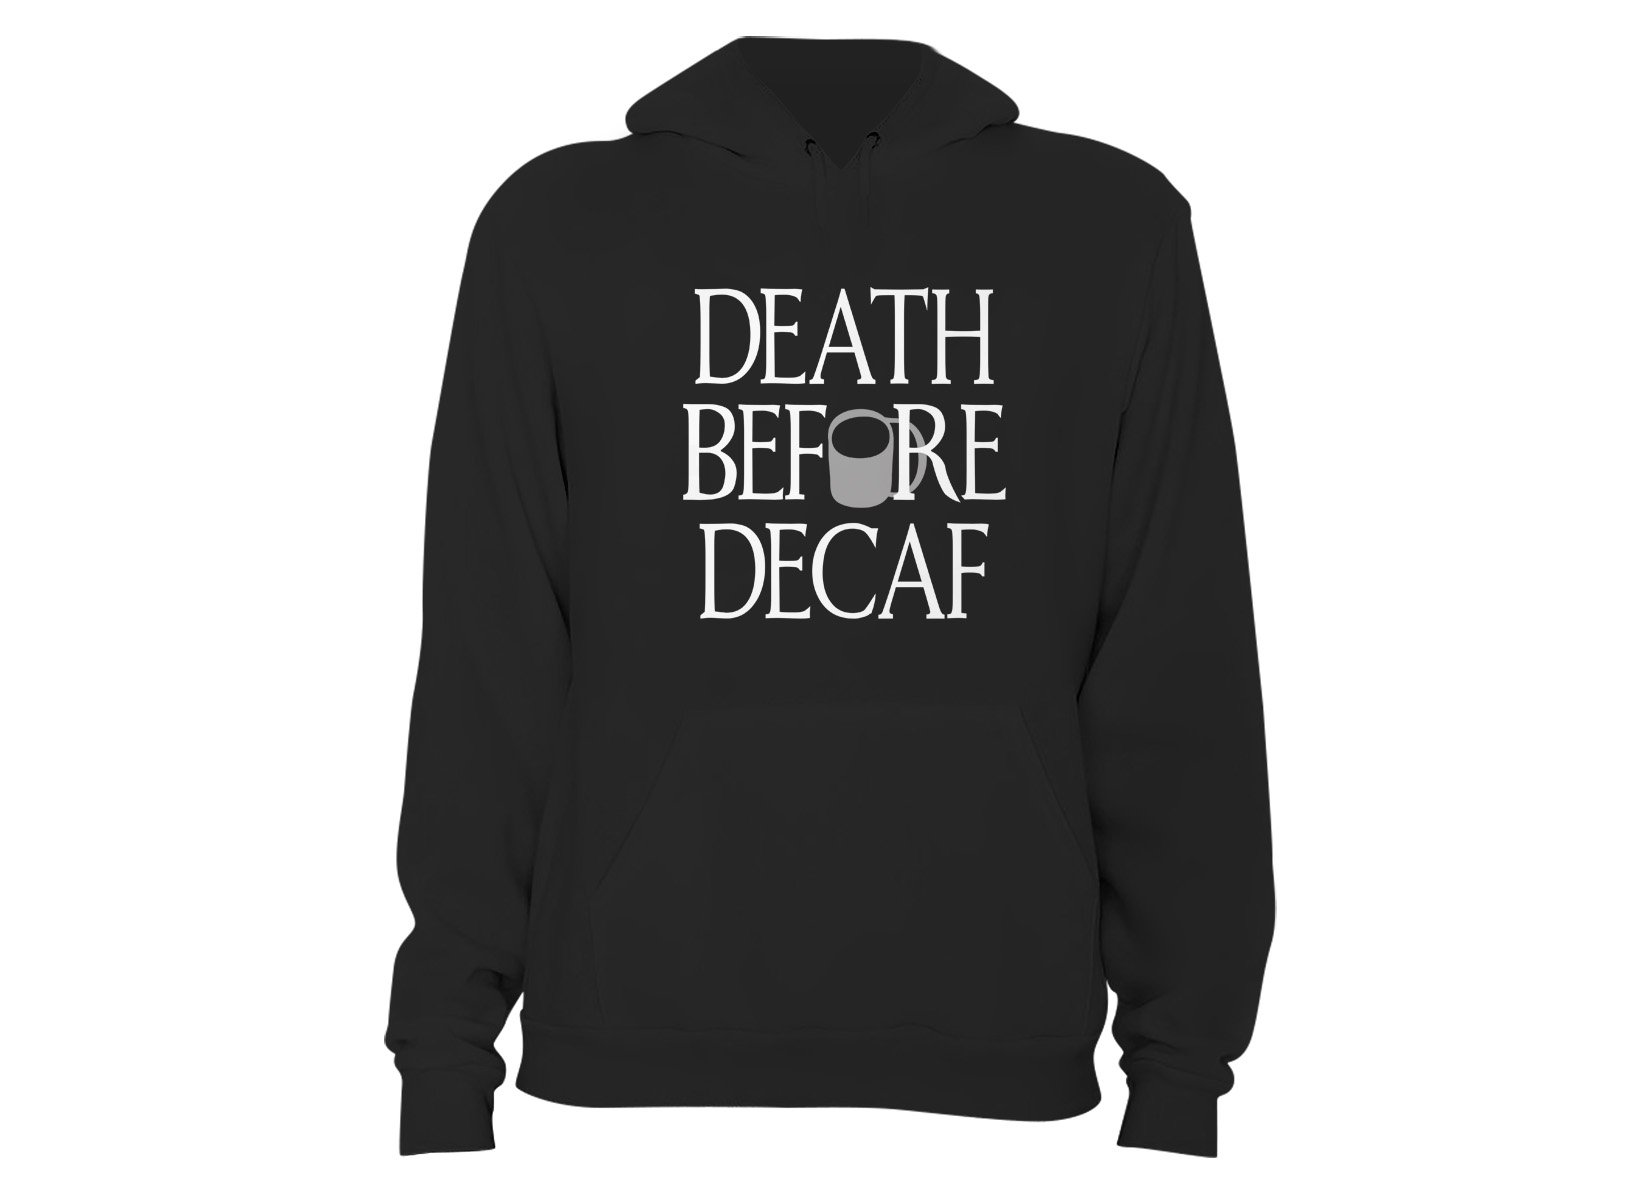 Death Before Decaf on Hoodie